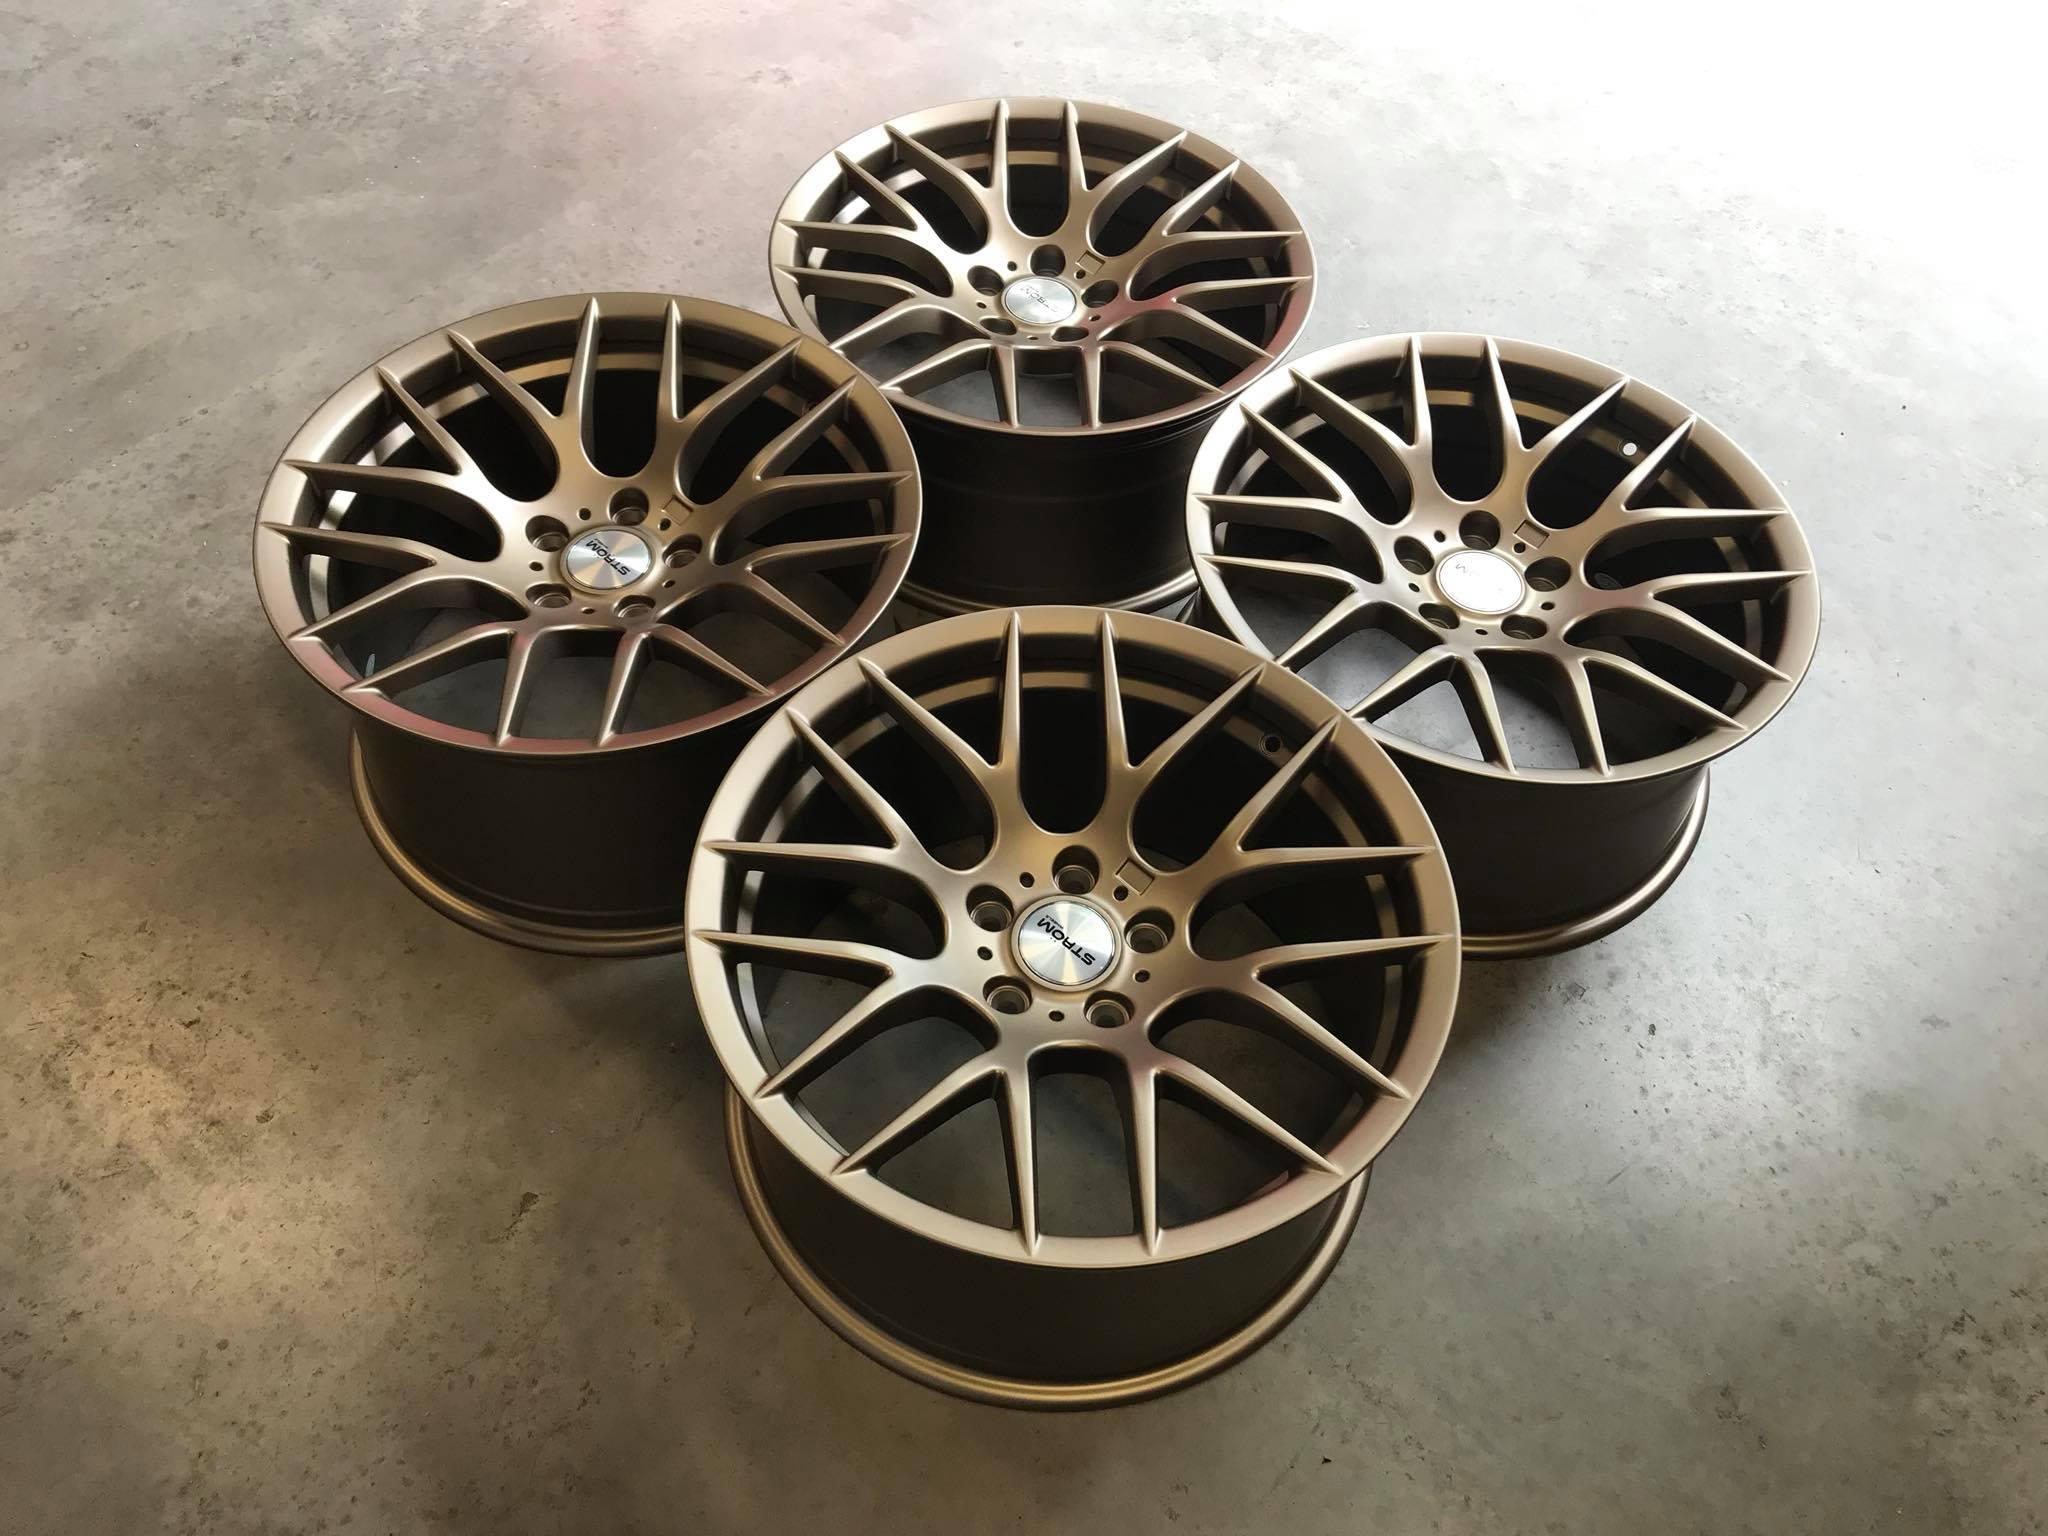 New 19 Quot Strom 359 Y Spoke Alloys In Bronze With Deeper